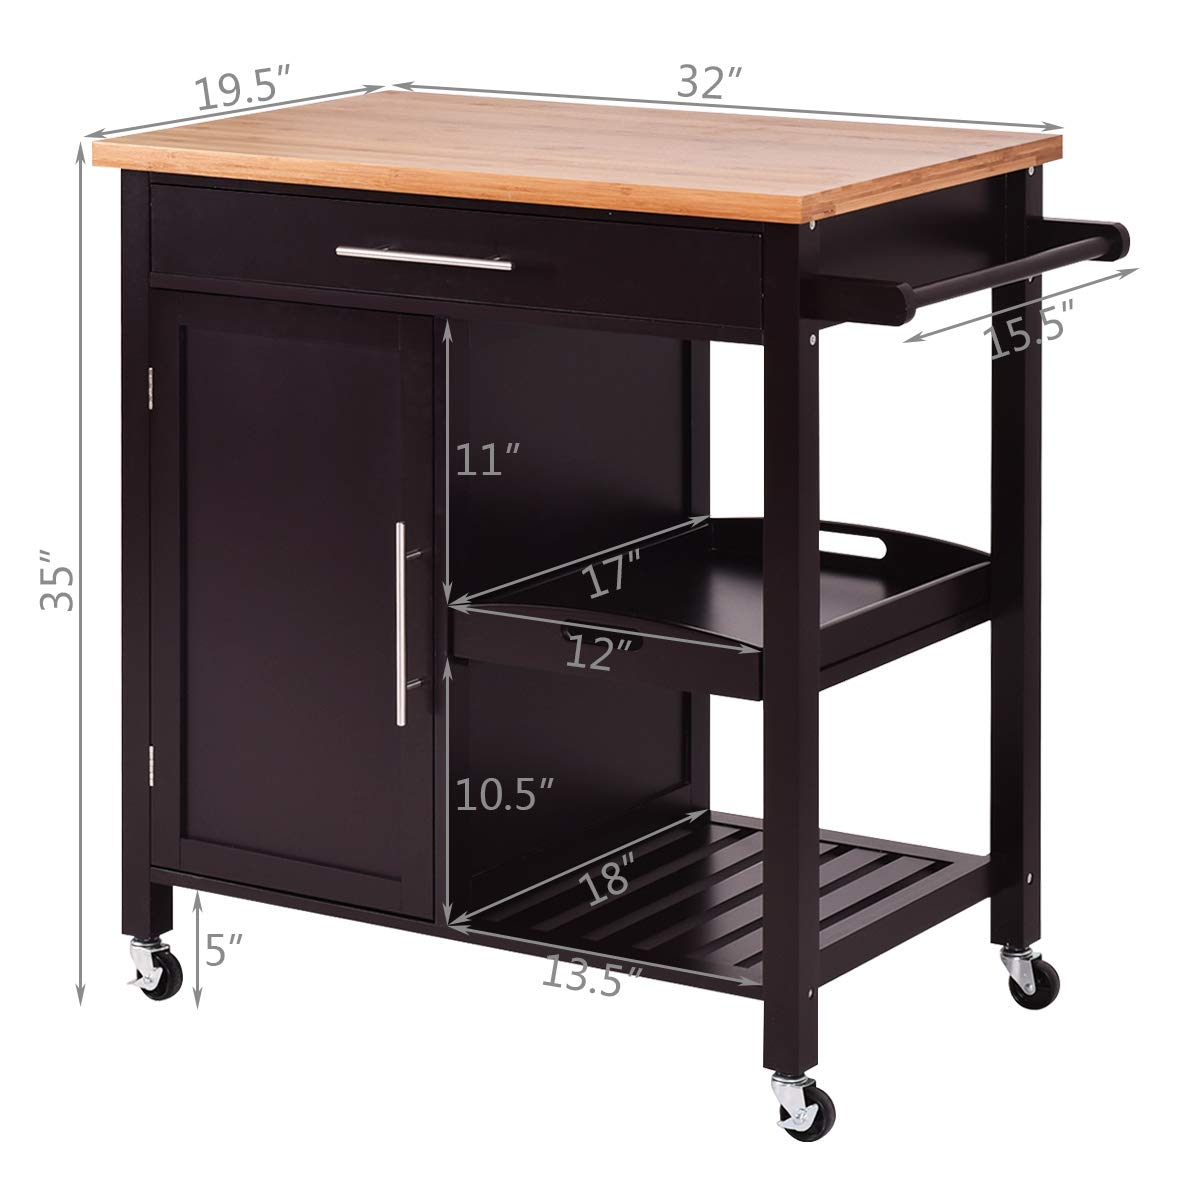 Giantex Kitchen Trolley Cart Wood Rolling Island Cart Home Restaurant Kitchen Dining Room Serving Utility Cart w/Bamboo Top Storage Cabinet Bigger Drawer Removable Tray Shelf, Brown by Giantex (Image #7)